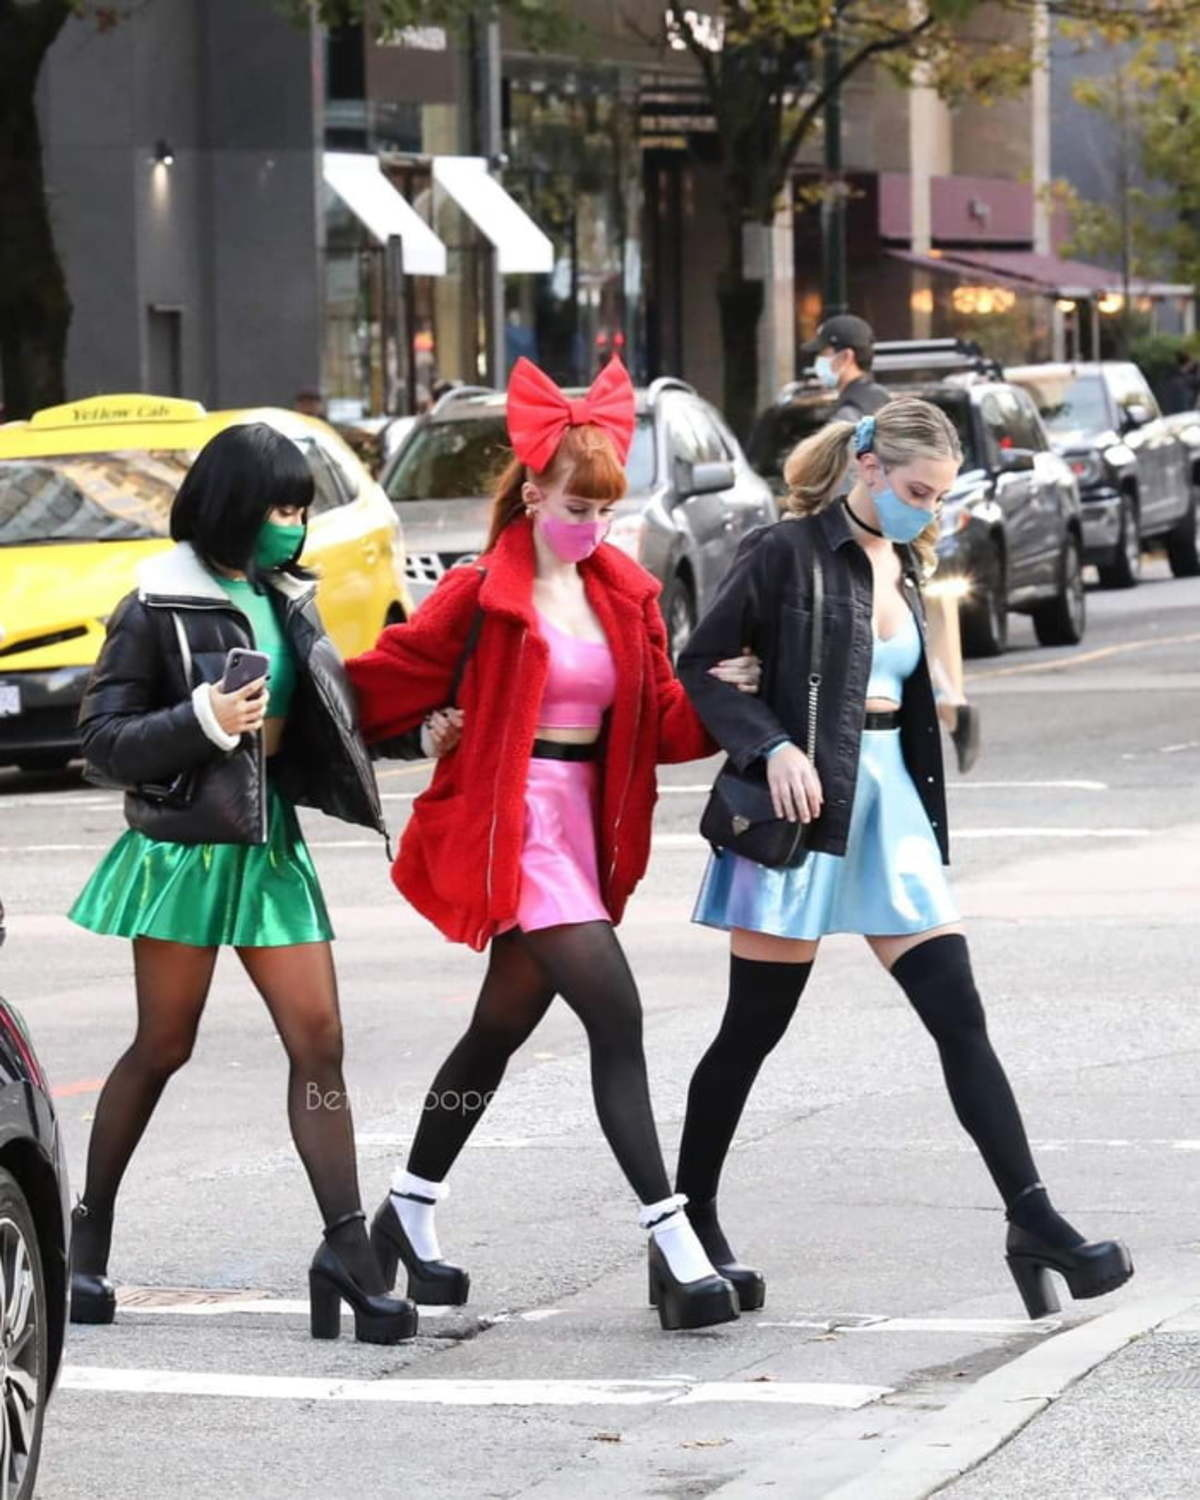 PPG. .. They give off that cheap whore vibe that i need in my life